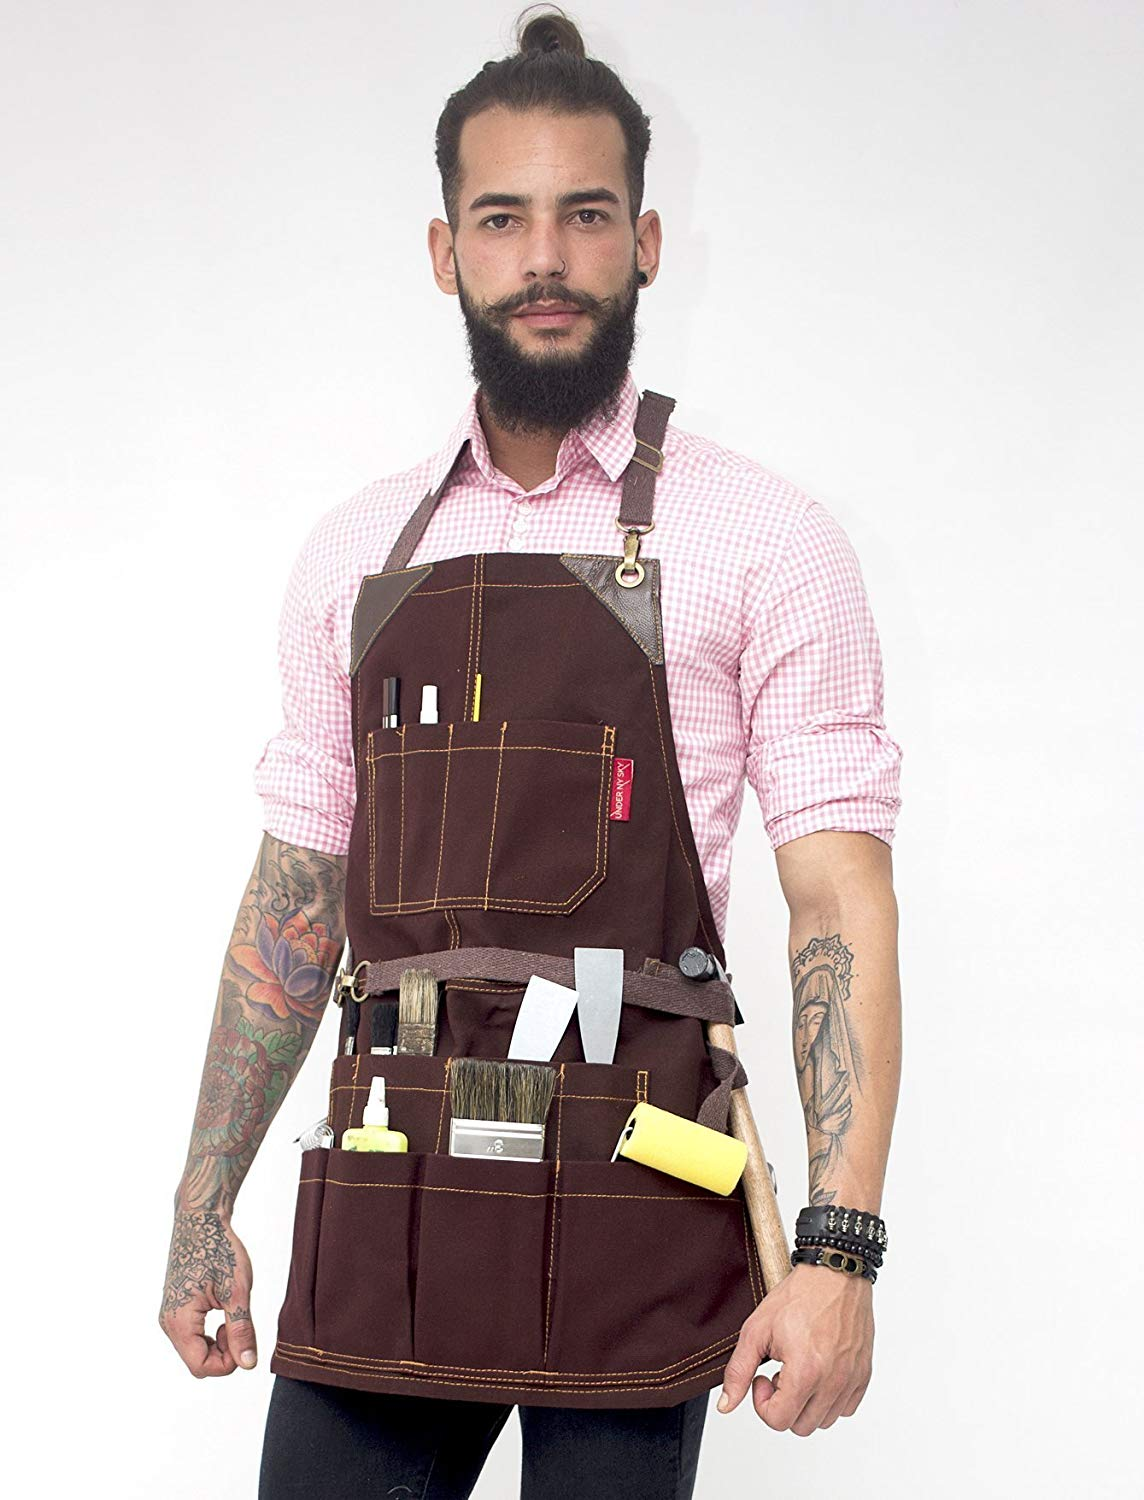 Tool Brown Apron – Heavy-Duty Waxed Canvas, Leather Reinforcement, Extra Pockets – Adjustable for Men and Women – Pro Mechanic, Woodworker, Blacksmith, Plummer, Electrician, Welder Aprons